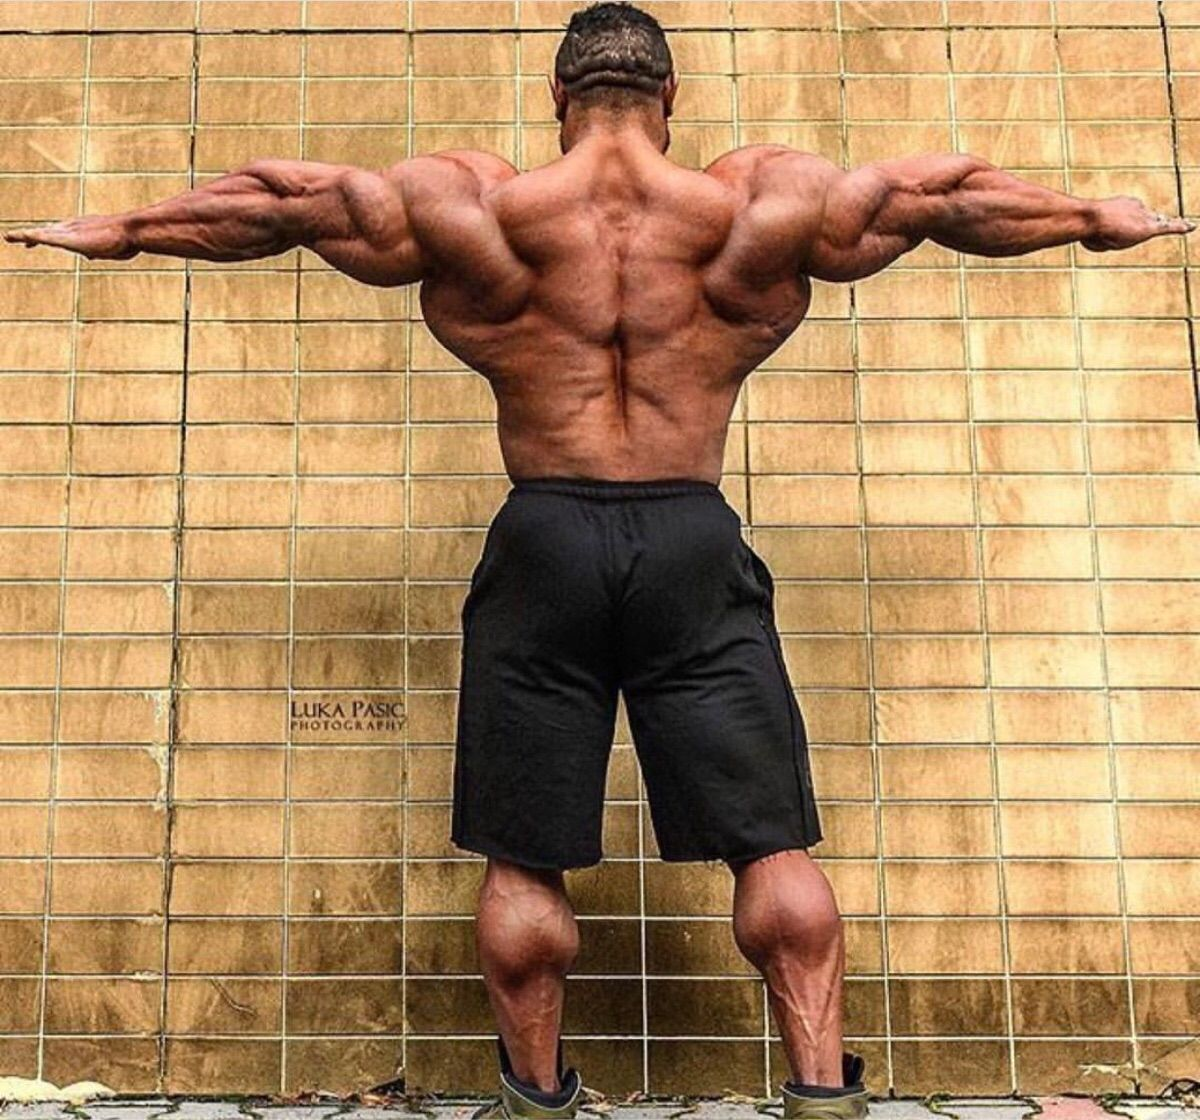 Roelly's rear delt development this year is ridiculous